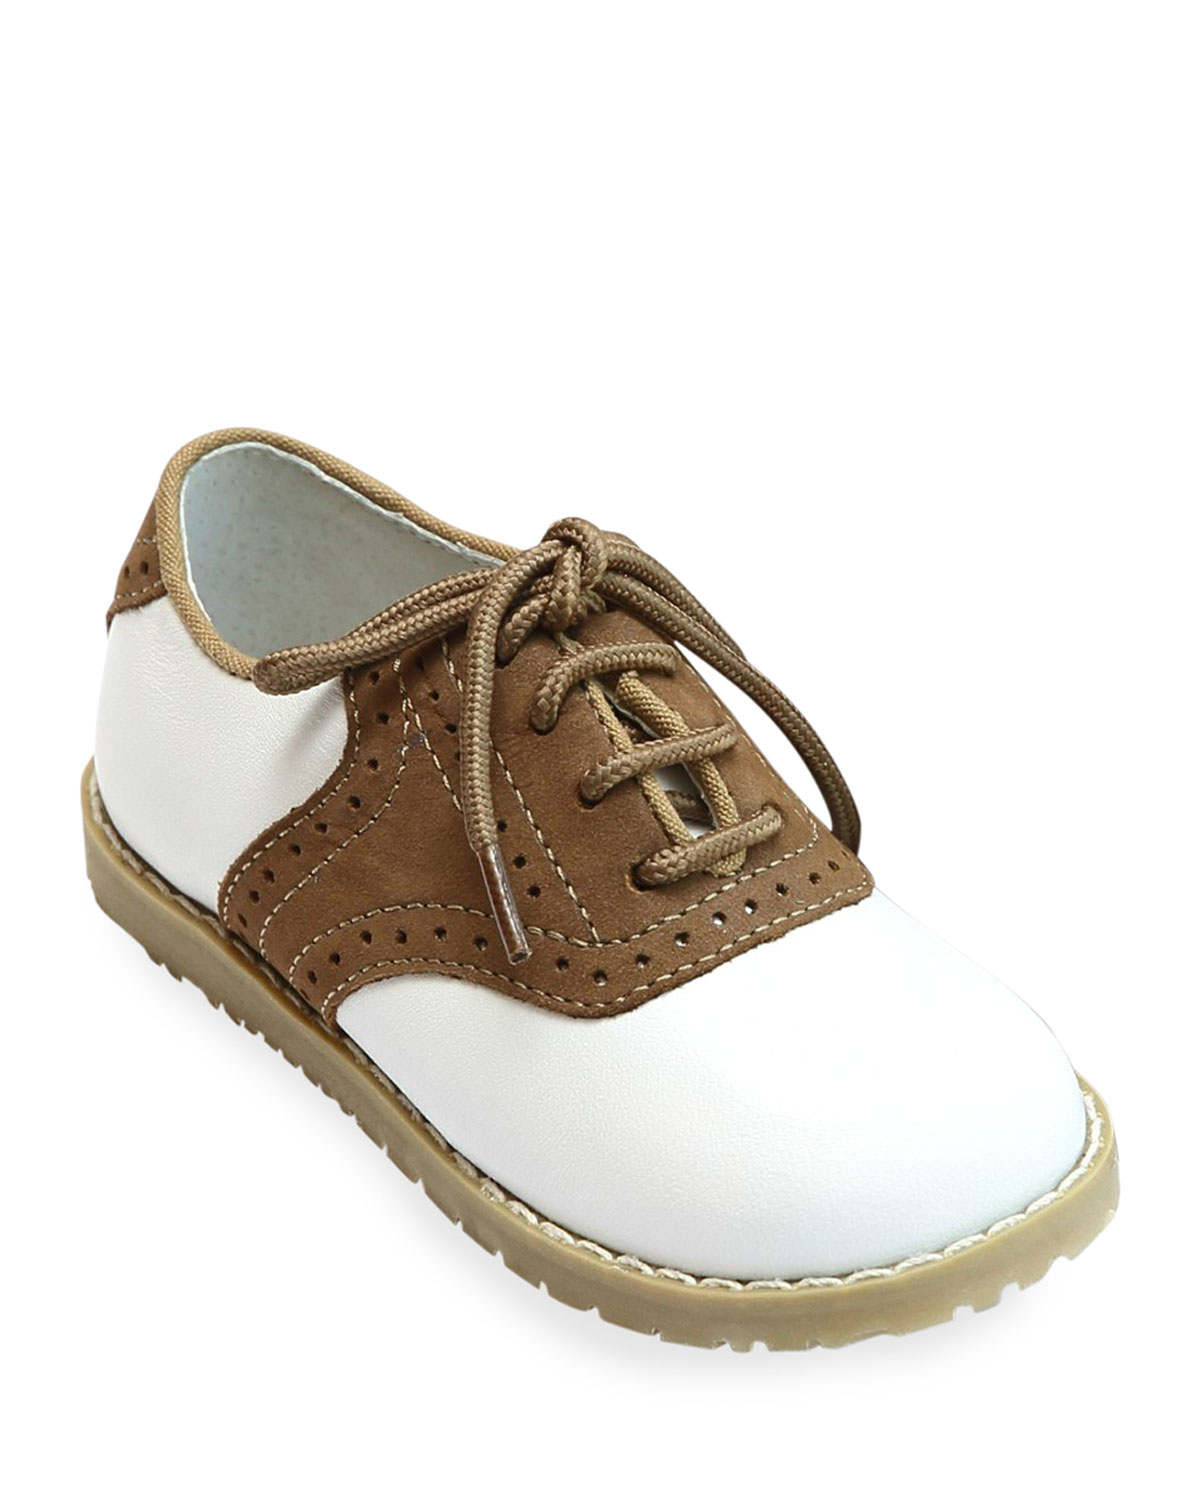 L Amour Shoes Luke Two Tone Leather Saddle Shoes Baby Toddler Kids